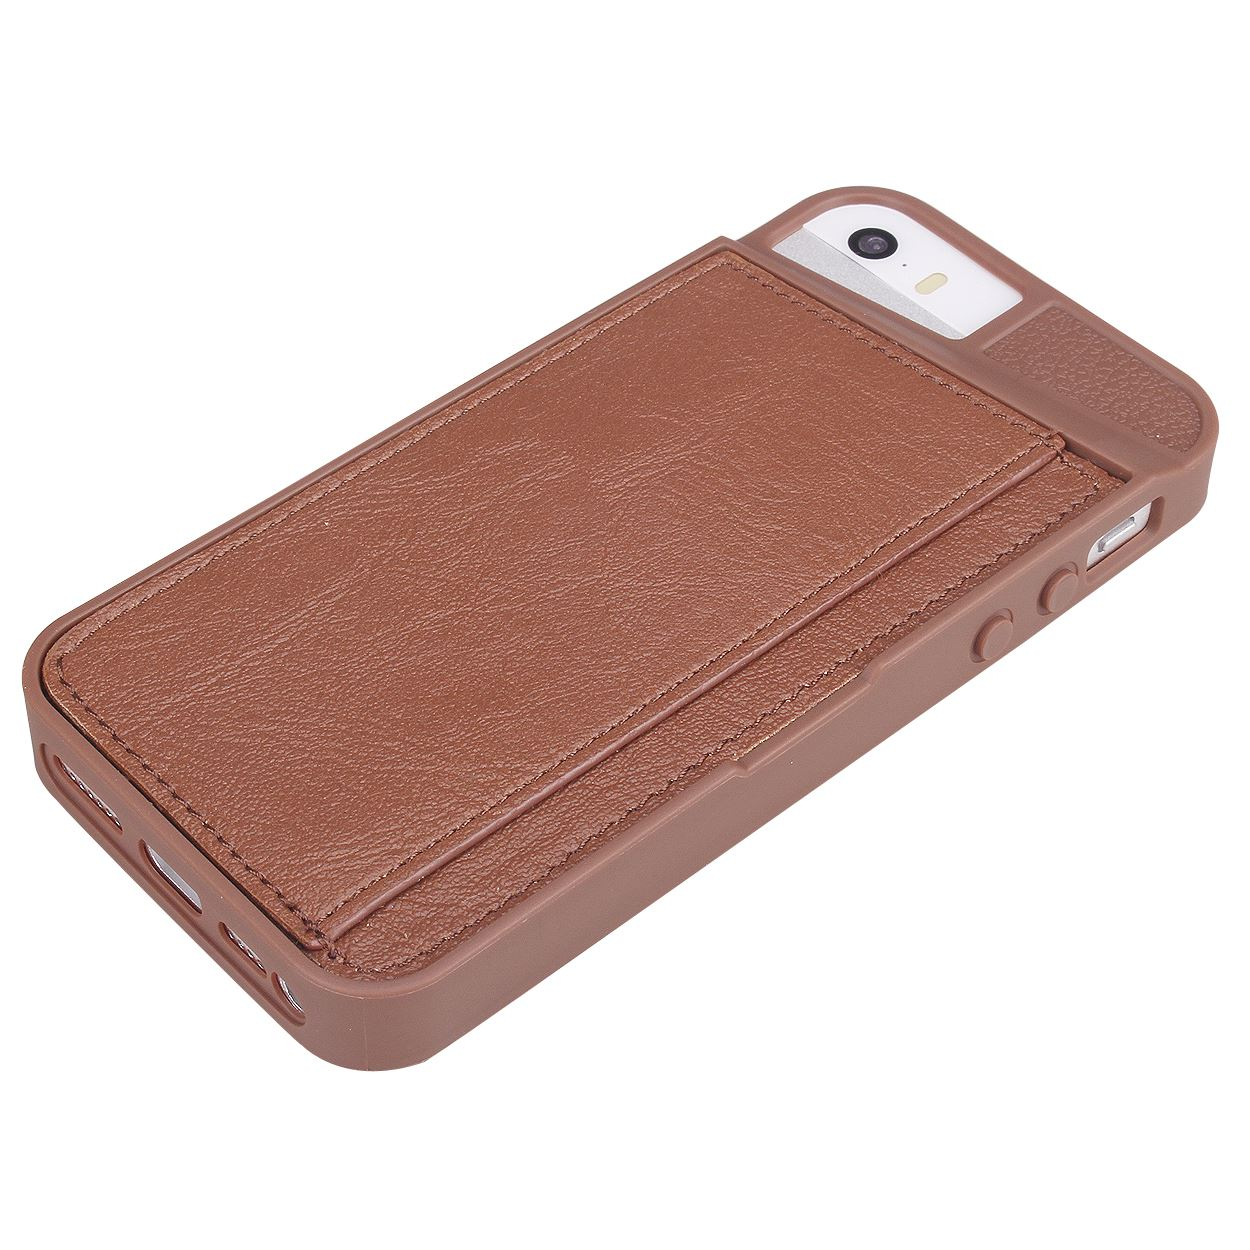 ... TPU Leather Credit Card ID Holder Wallet Case Cover - 1250x1250 - jpeg